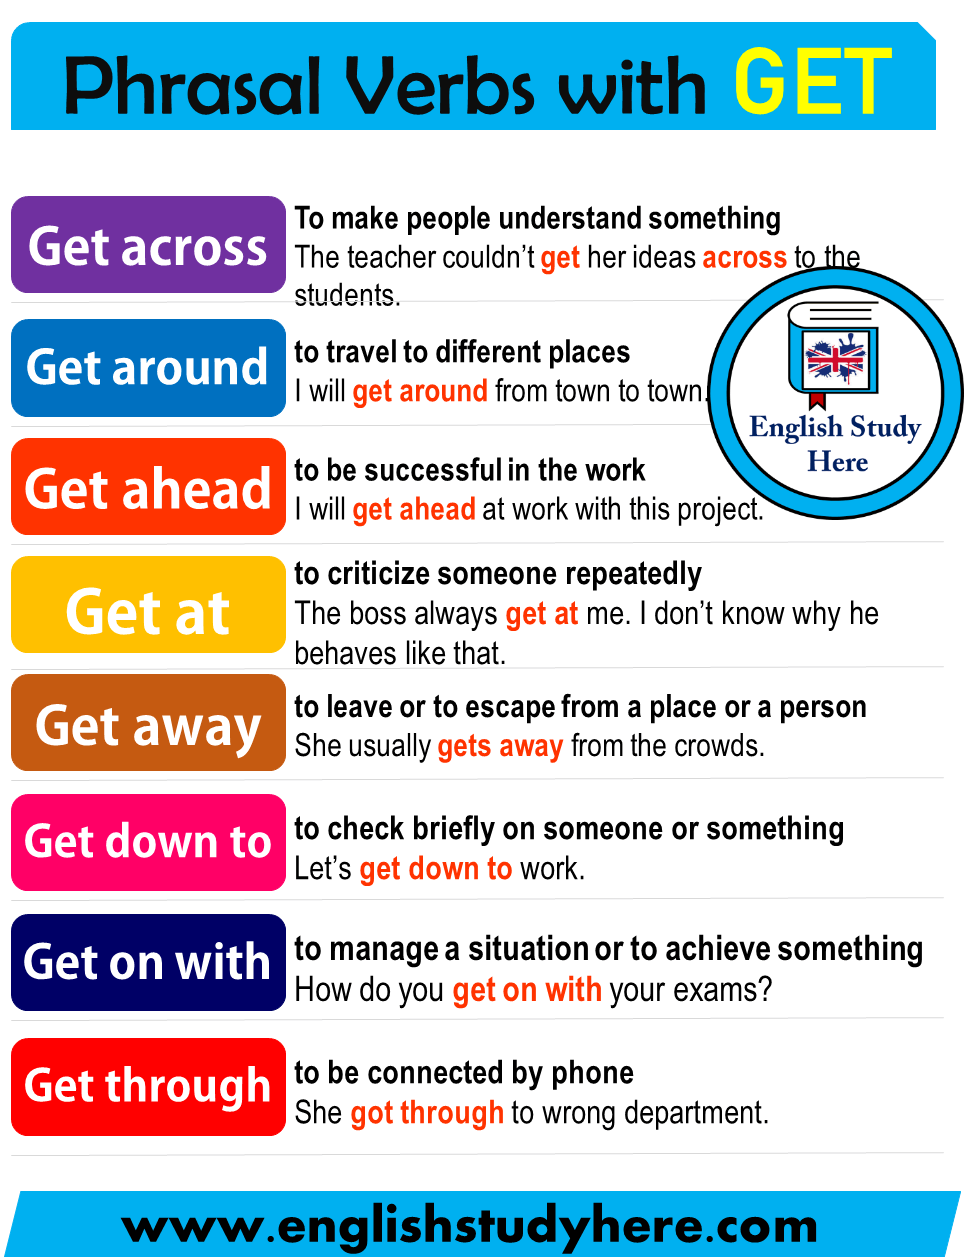 Phrasal Verbs with GET in English - English Study Here